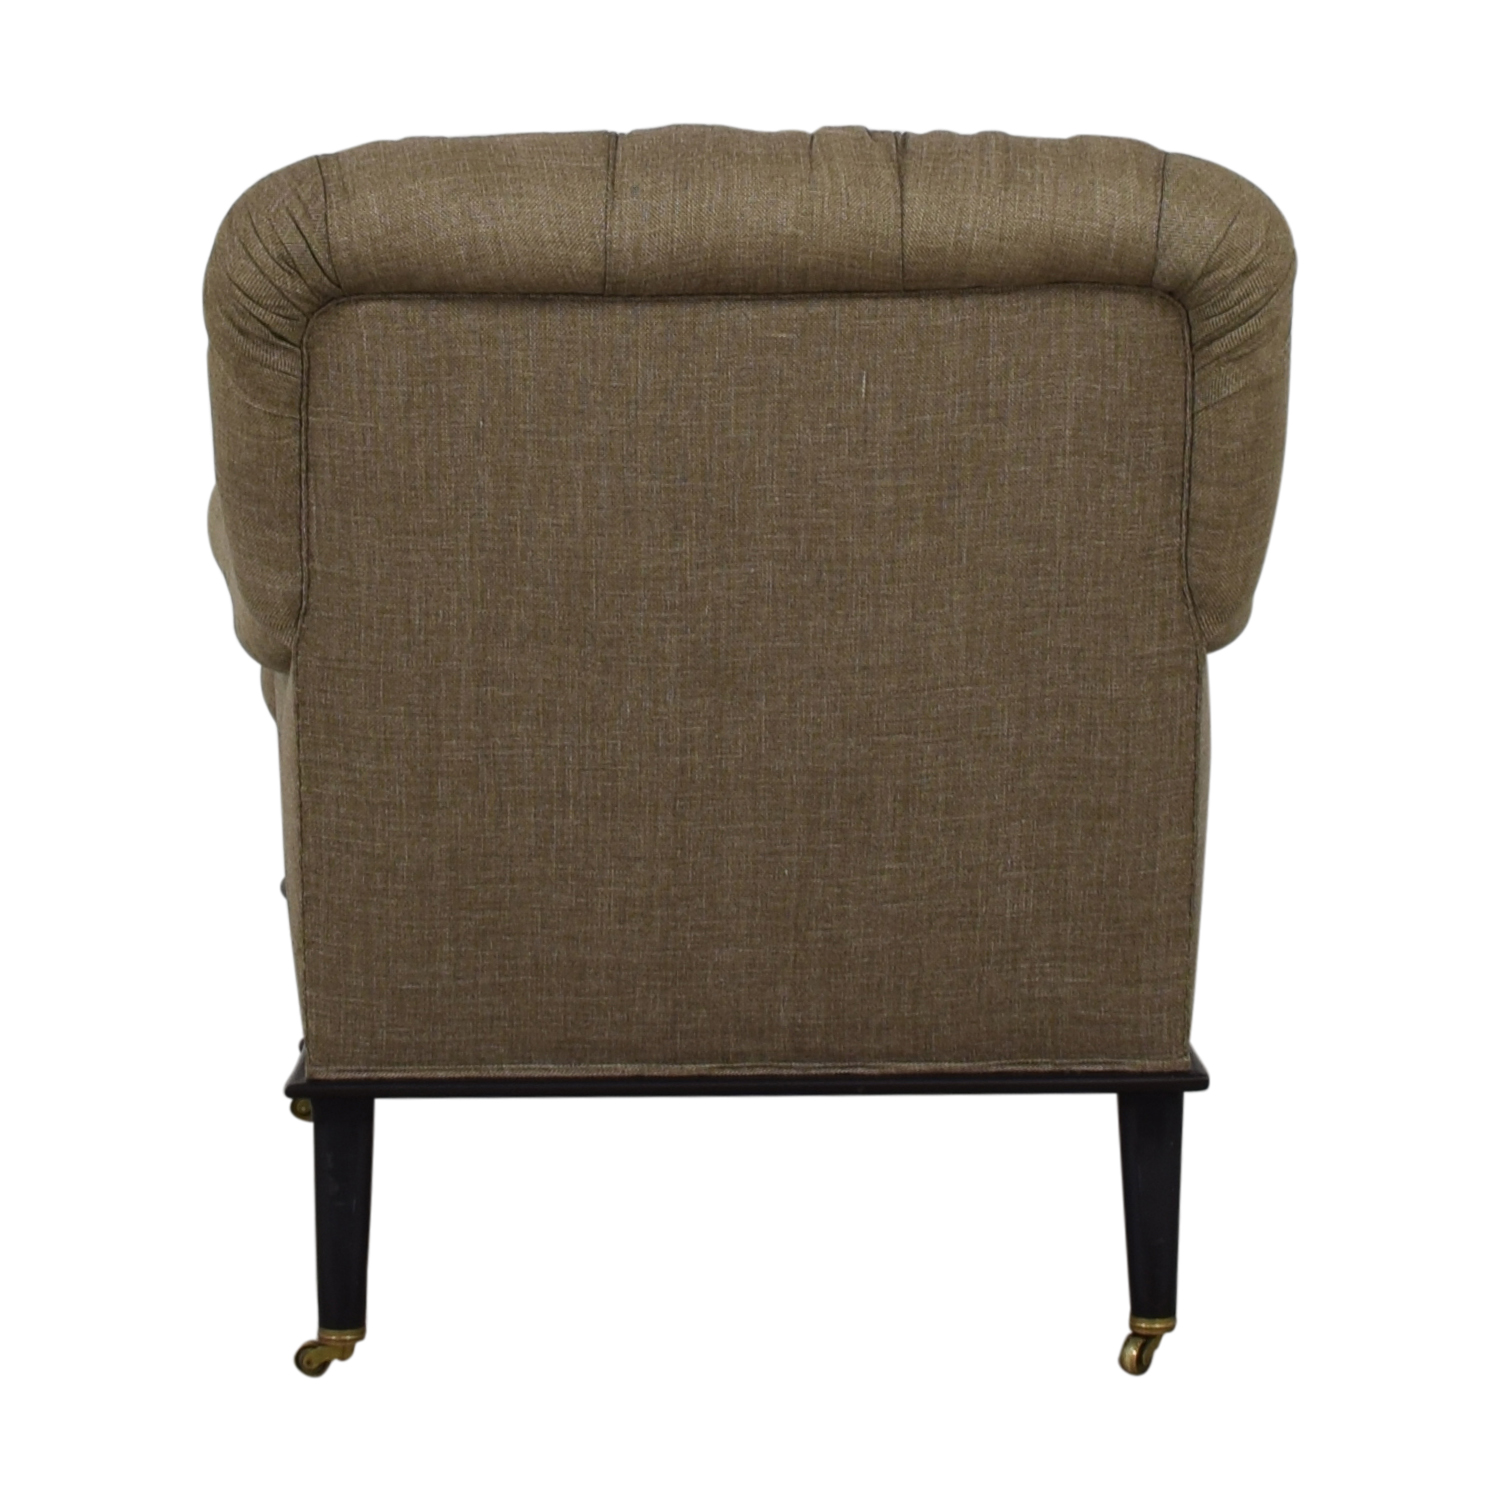 shop Furniture Masters Grey Tufted Accent Chair Furniture Masters Sofas